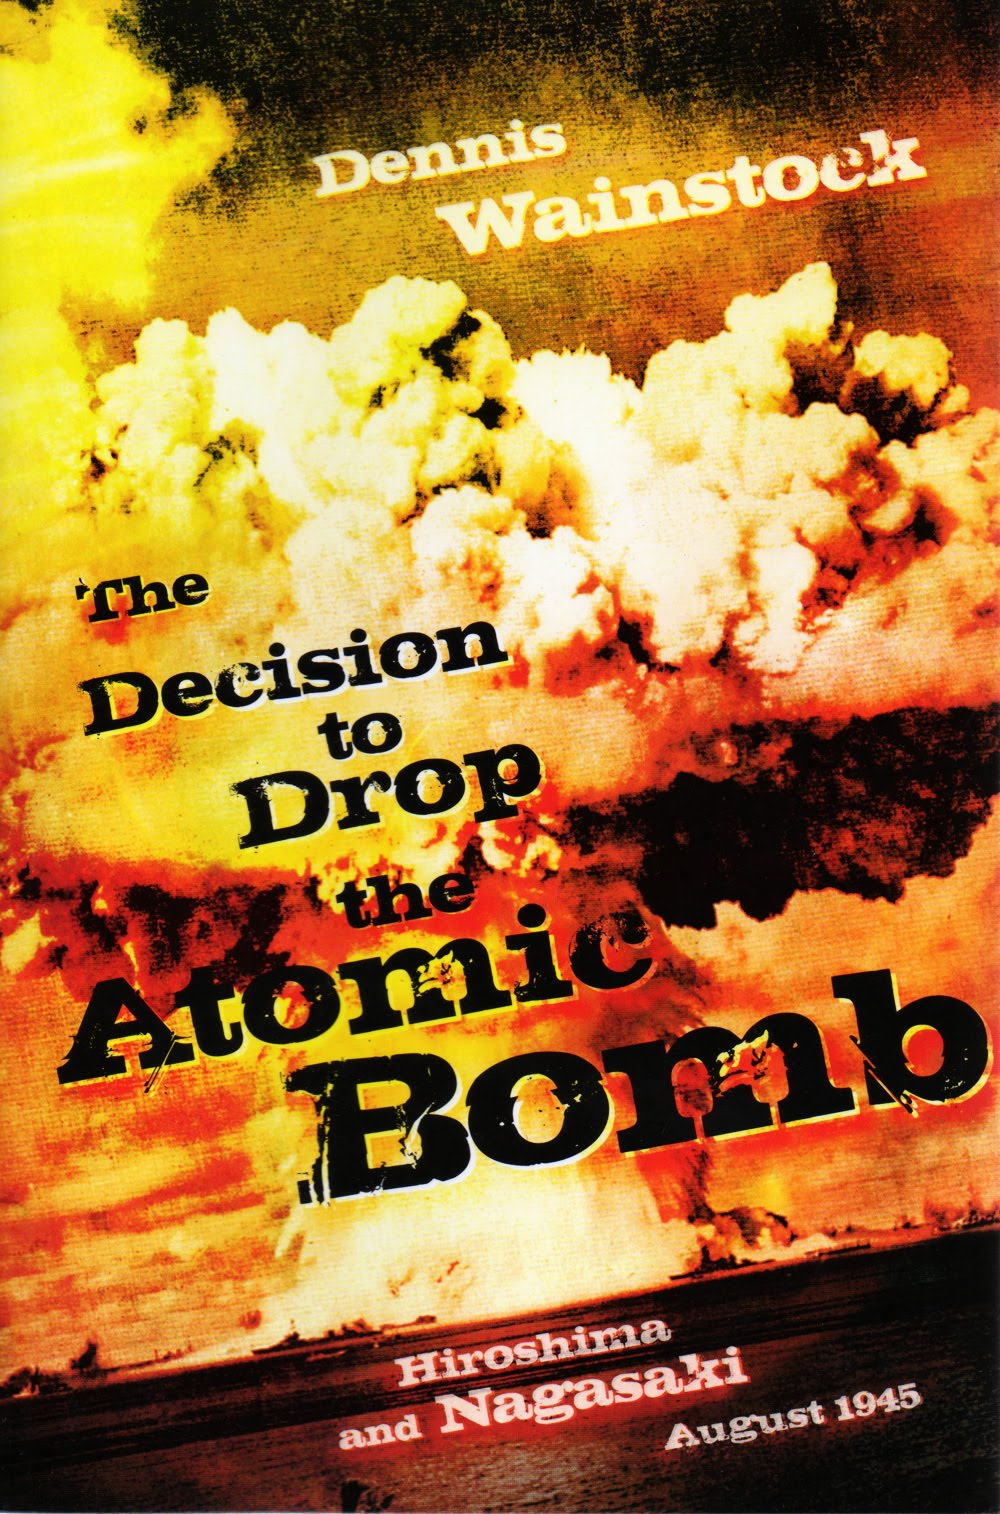 hiroshima a difficult but just decision Atomic bombing of hiroshima and nagasaki essay 879 words nov 21st, 2005 4 pages president truman's decision to drop the atomic bomb on the cities of hiroshima and nagasaki were the direct cause for the end of world war ii in the pacific.